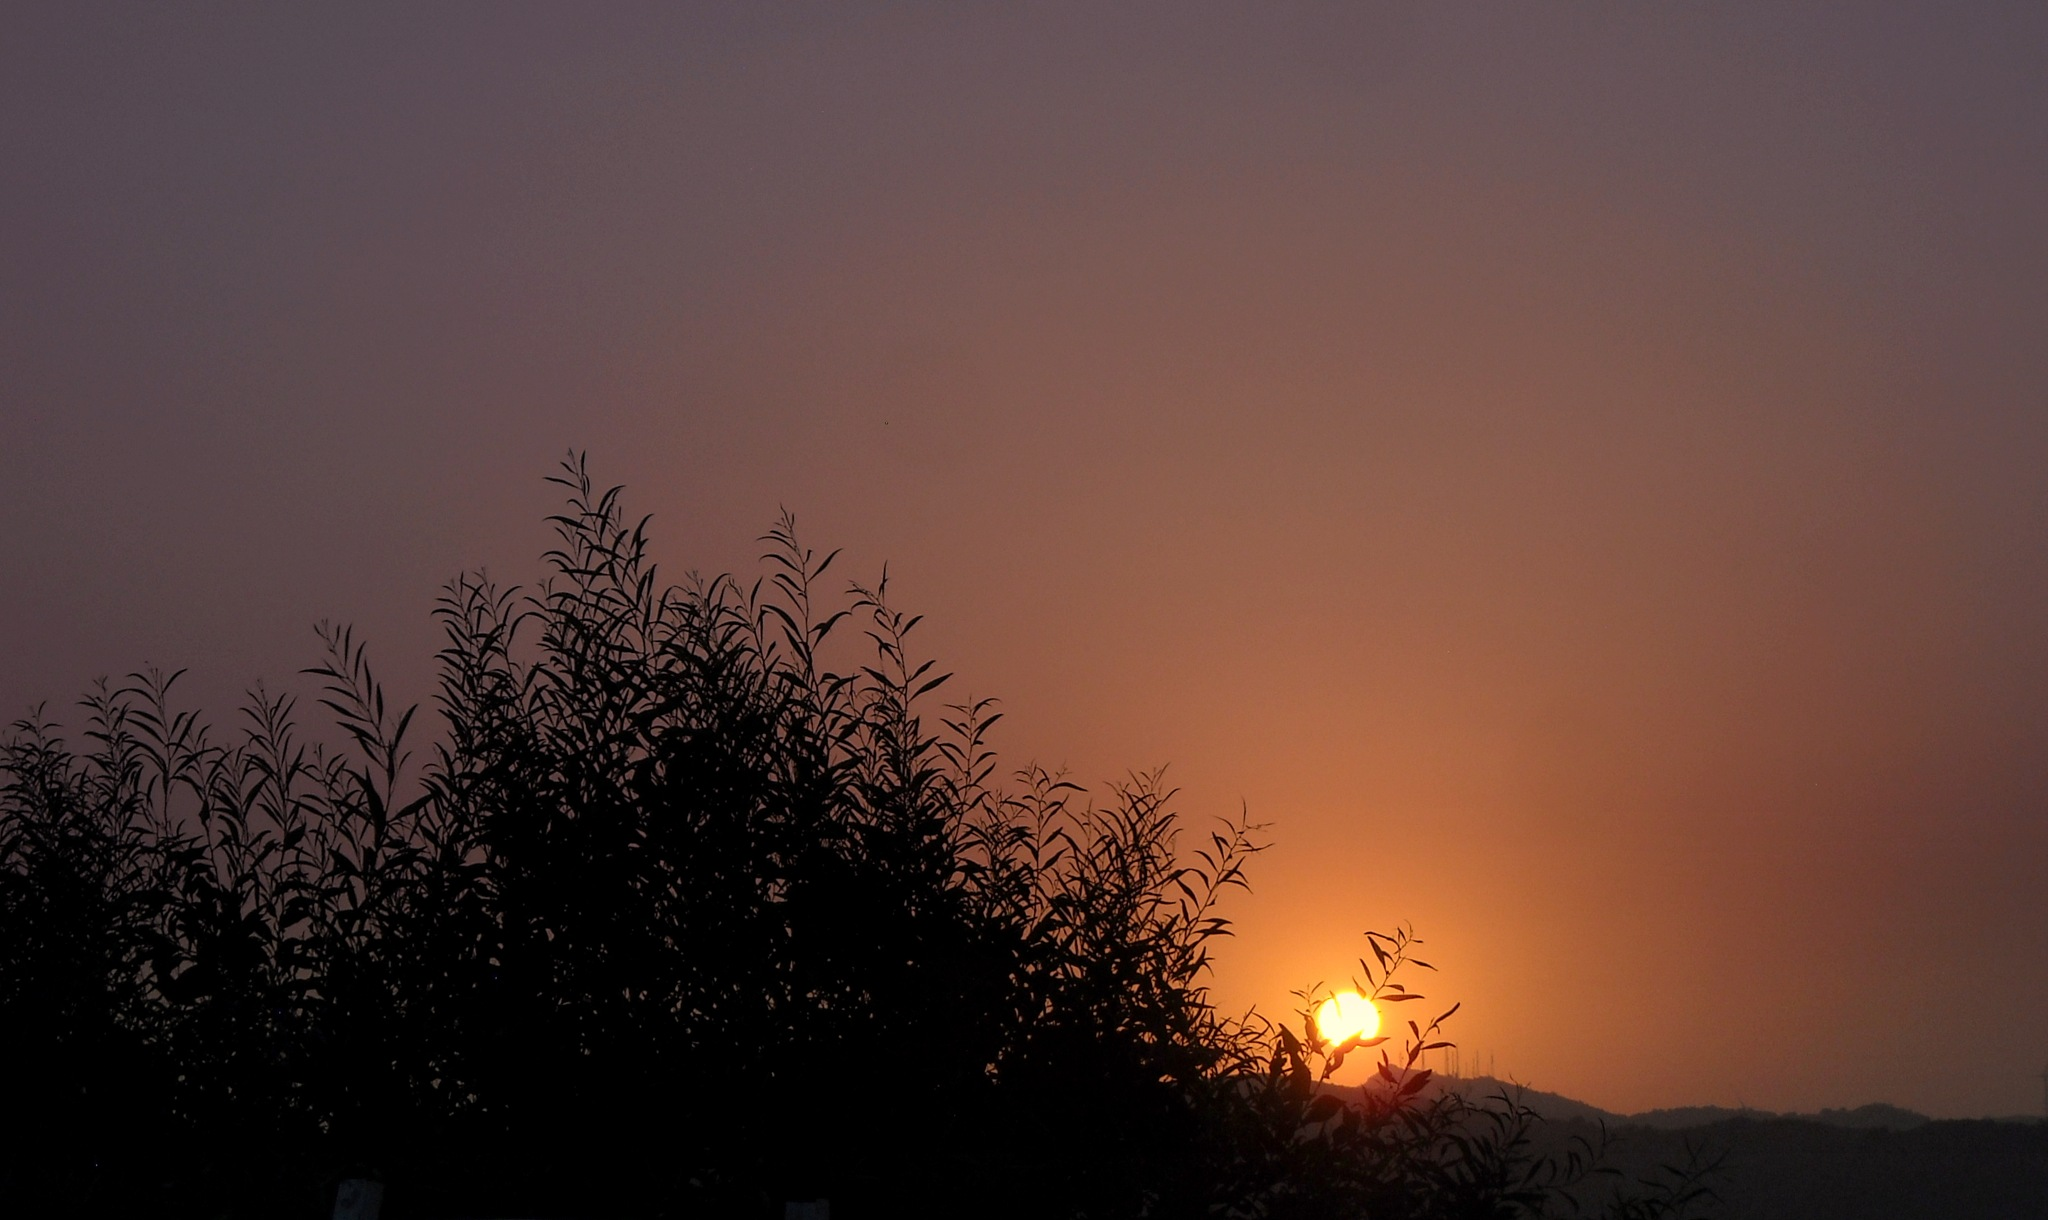 GOOD NIGHT FROM BODRUM 585, TONIGHT'S SUNSET by Akin Saner